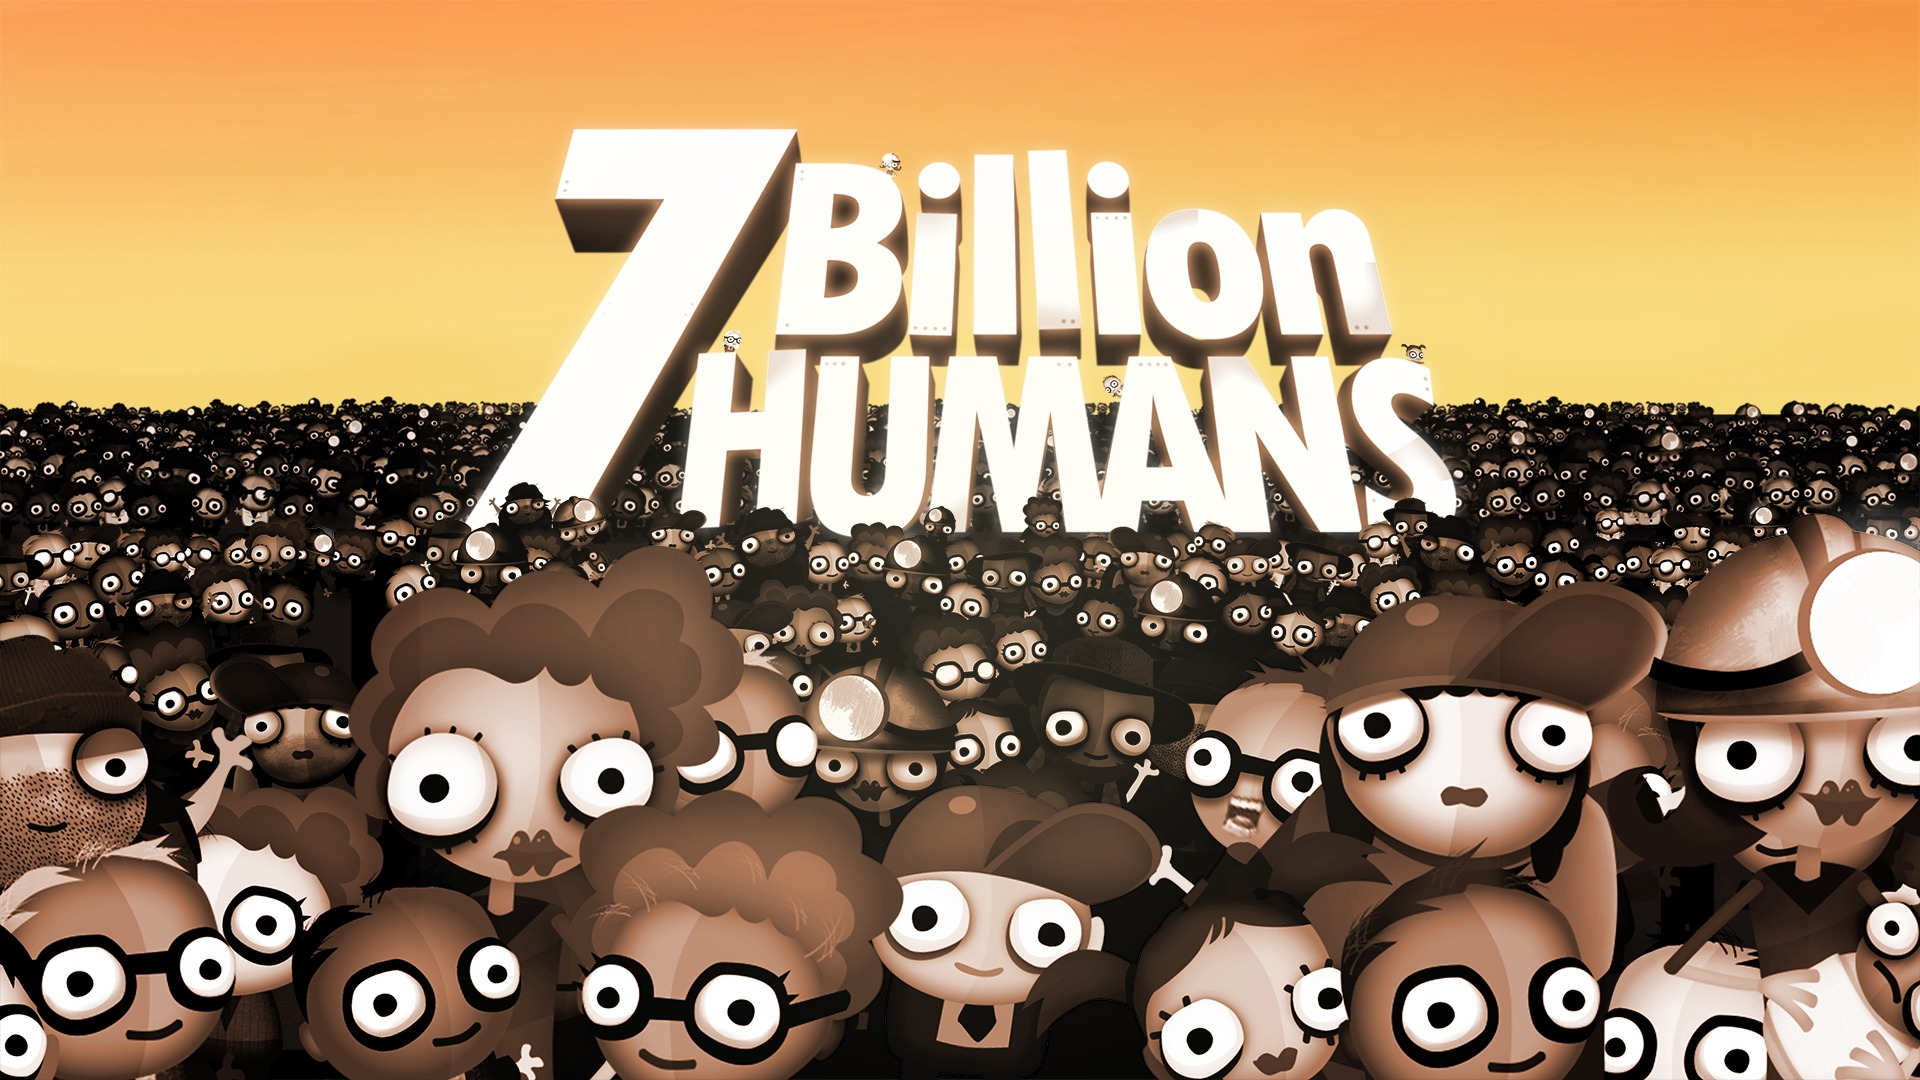 7 Billion Humans stats facts